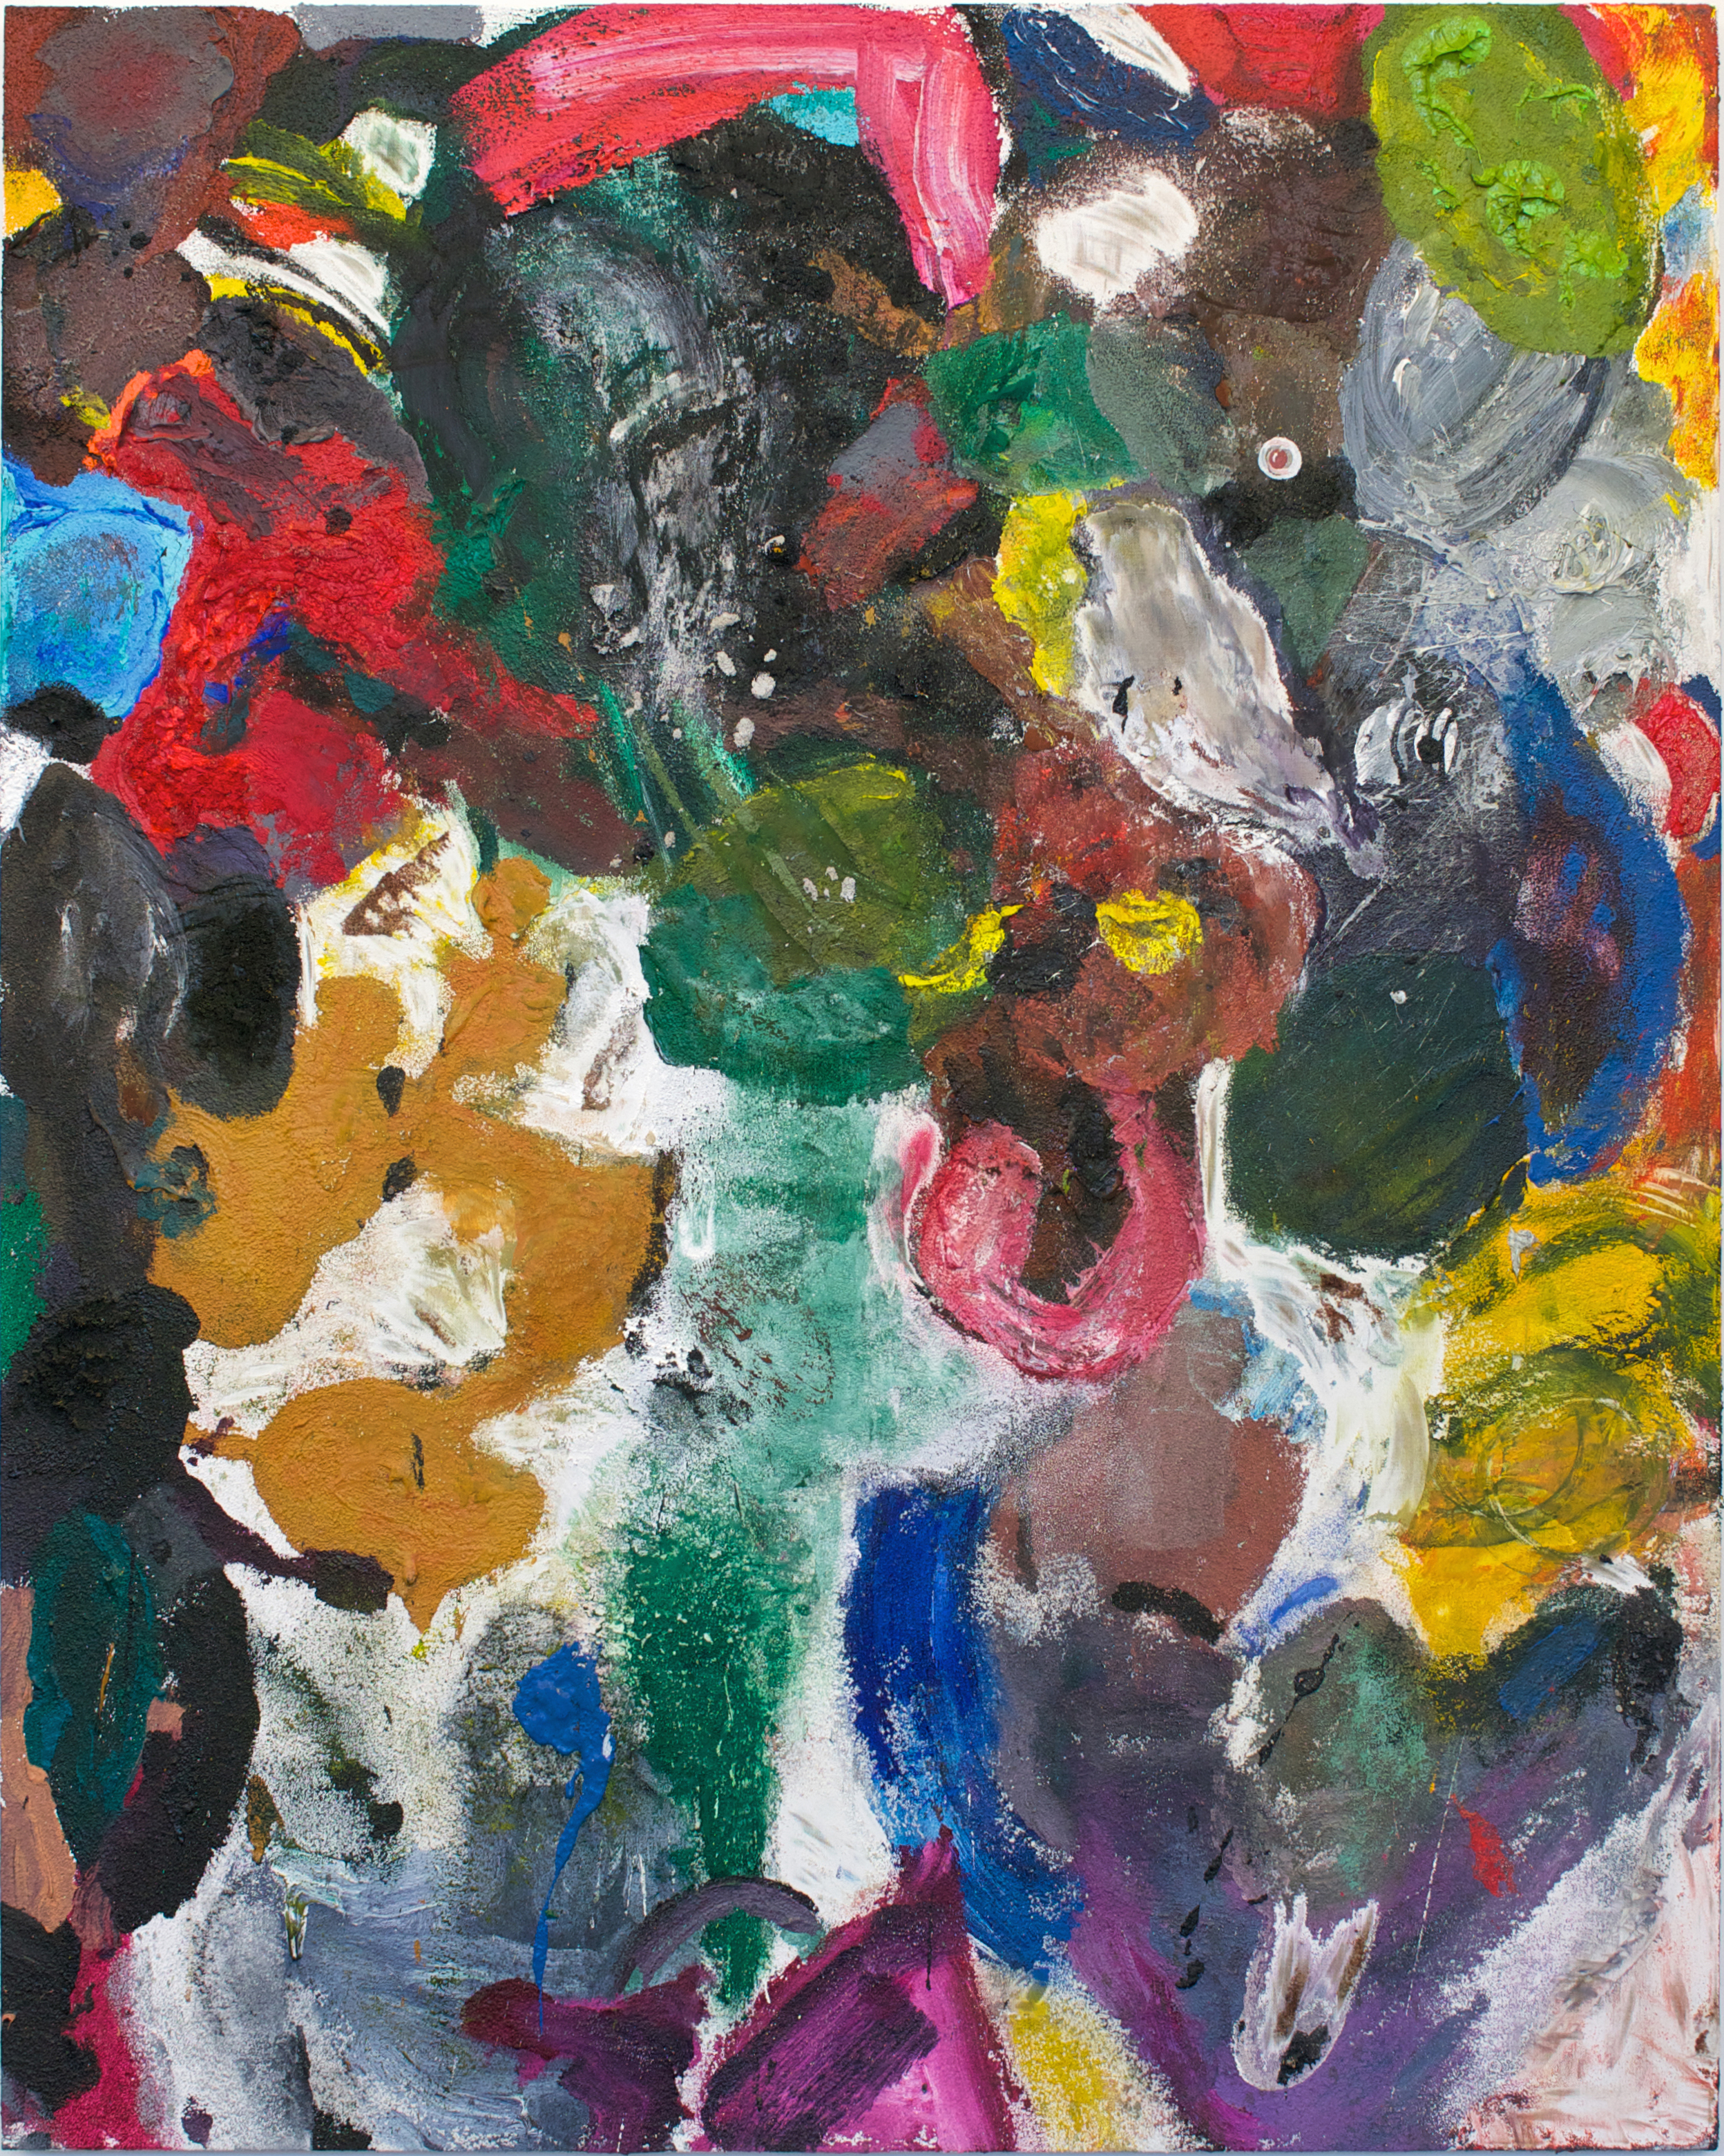 Jim Dine multi-colored abstract painting